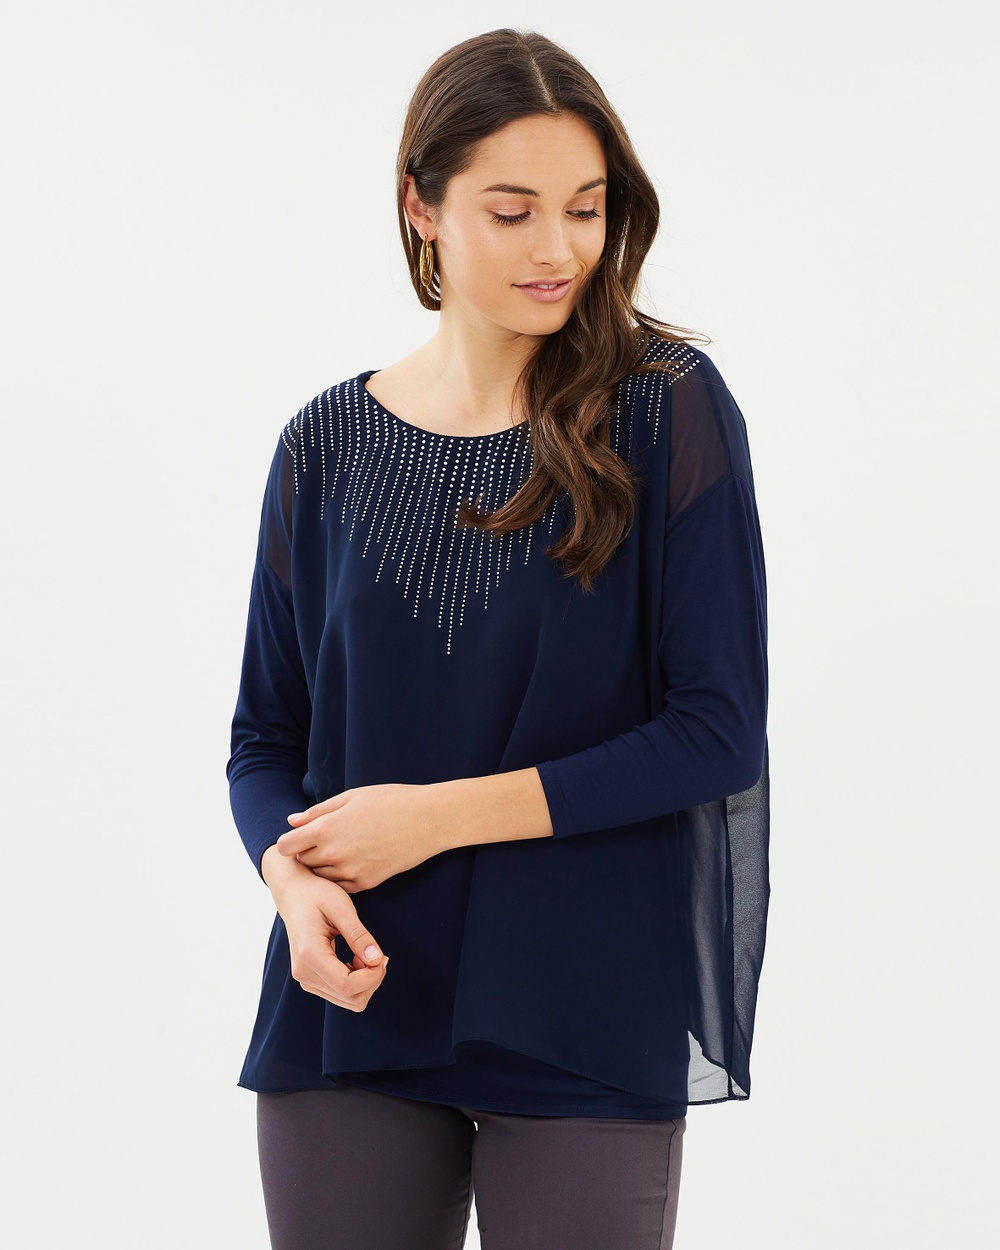 Wallis Embellished Layered Top Tops Navy Blue Embellished Layered Top